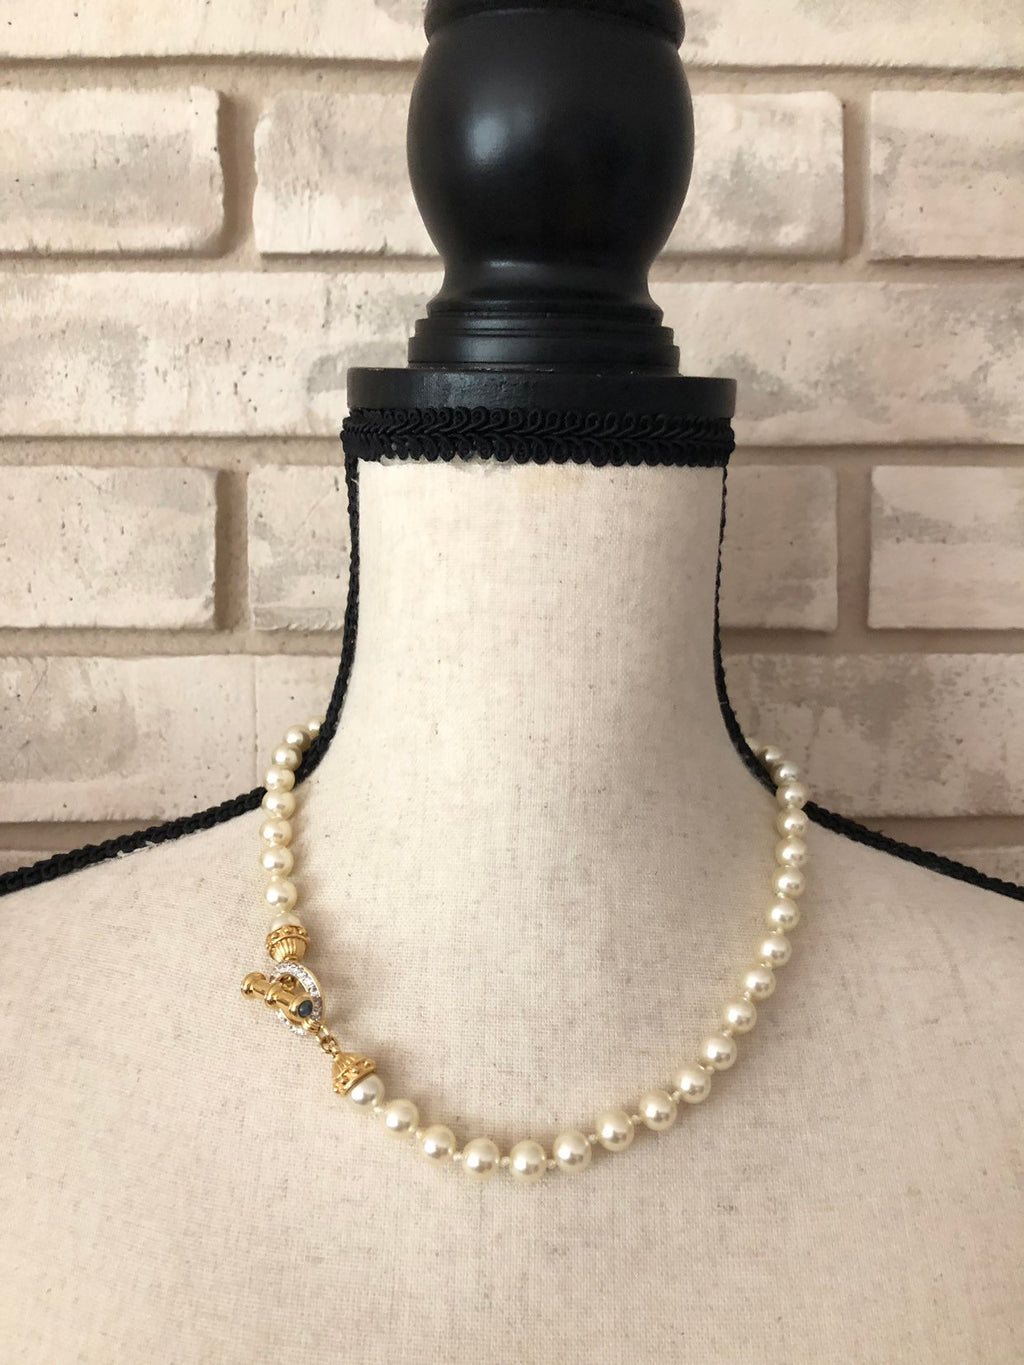 Nolan Miller White Classic Pearls Necklace Rhinestone Toggle Closure